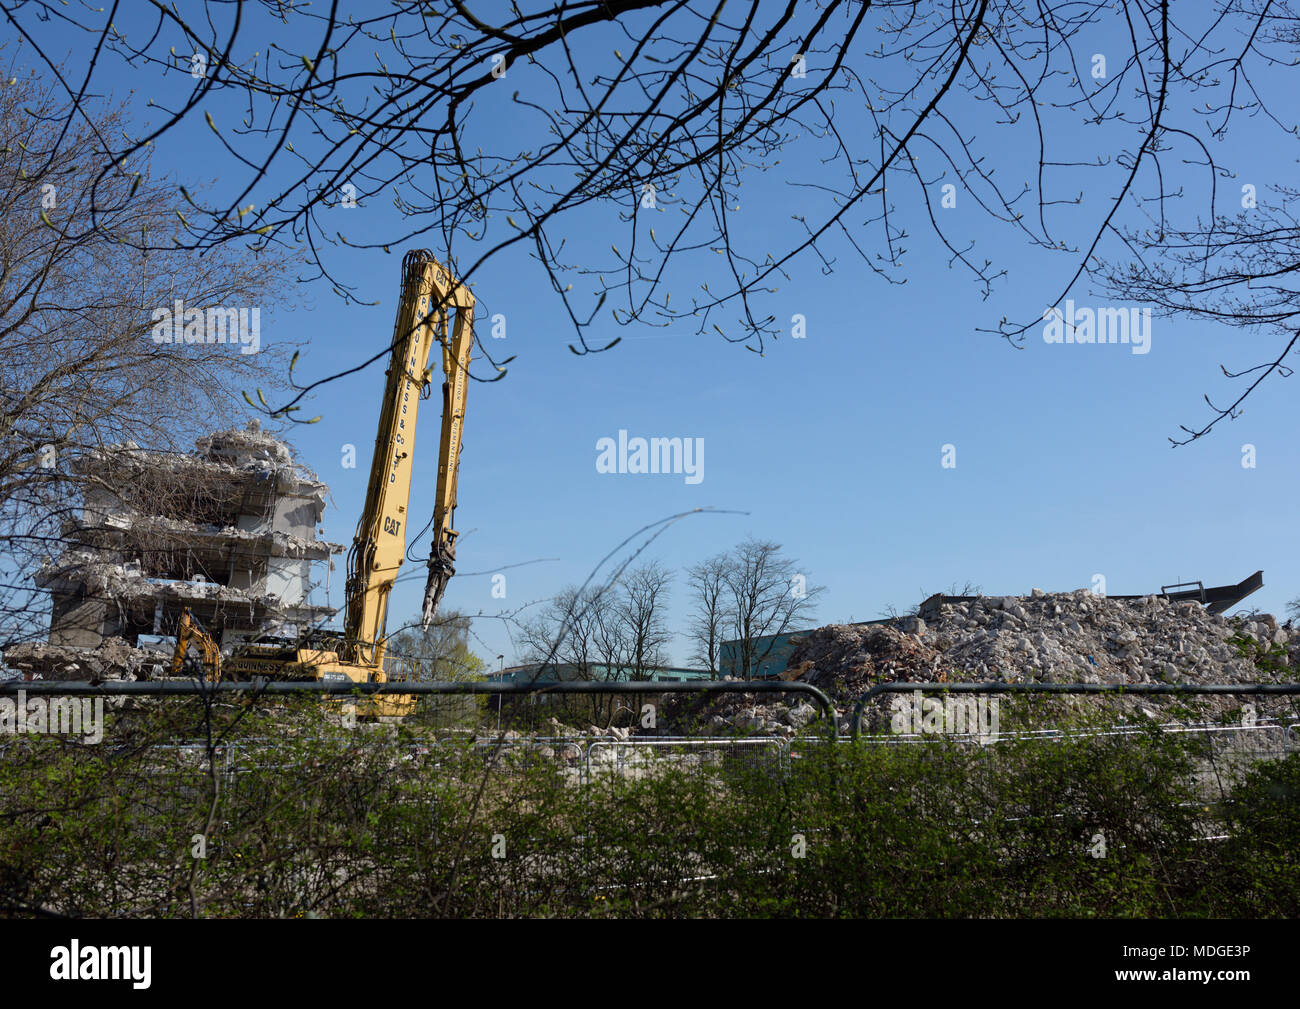 Caterpillar 350 L high reach demolition excavator with concrete crusher attachment  in front of partly demolished concrete building in bury lancashire - Stock Image